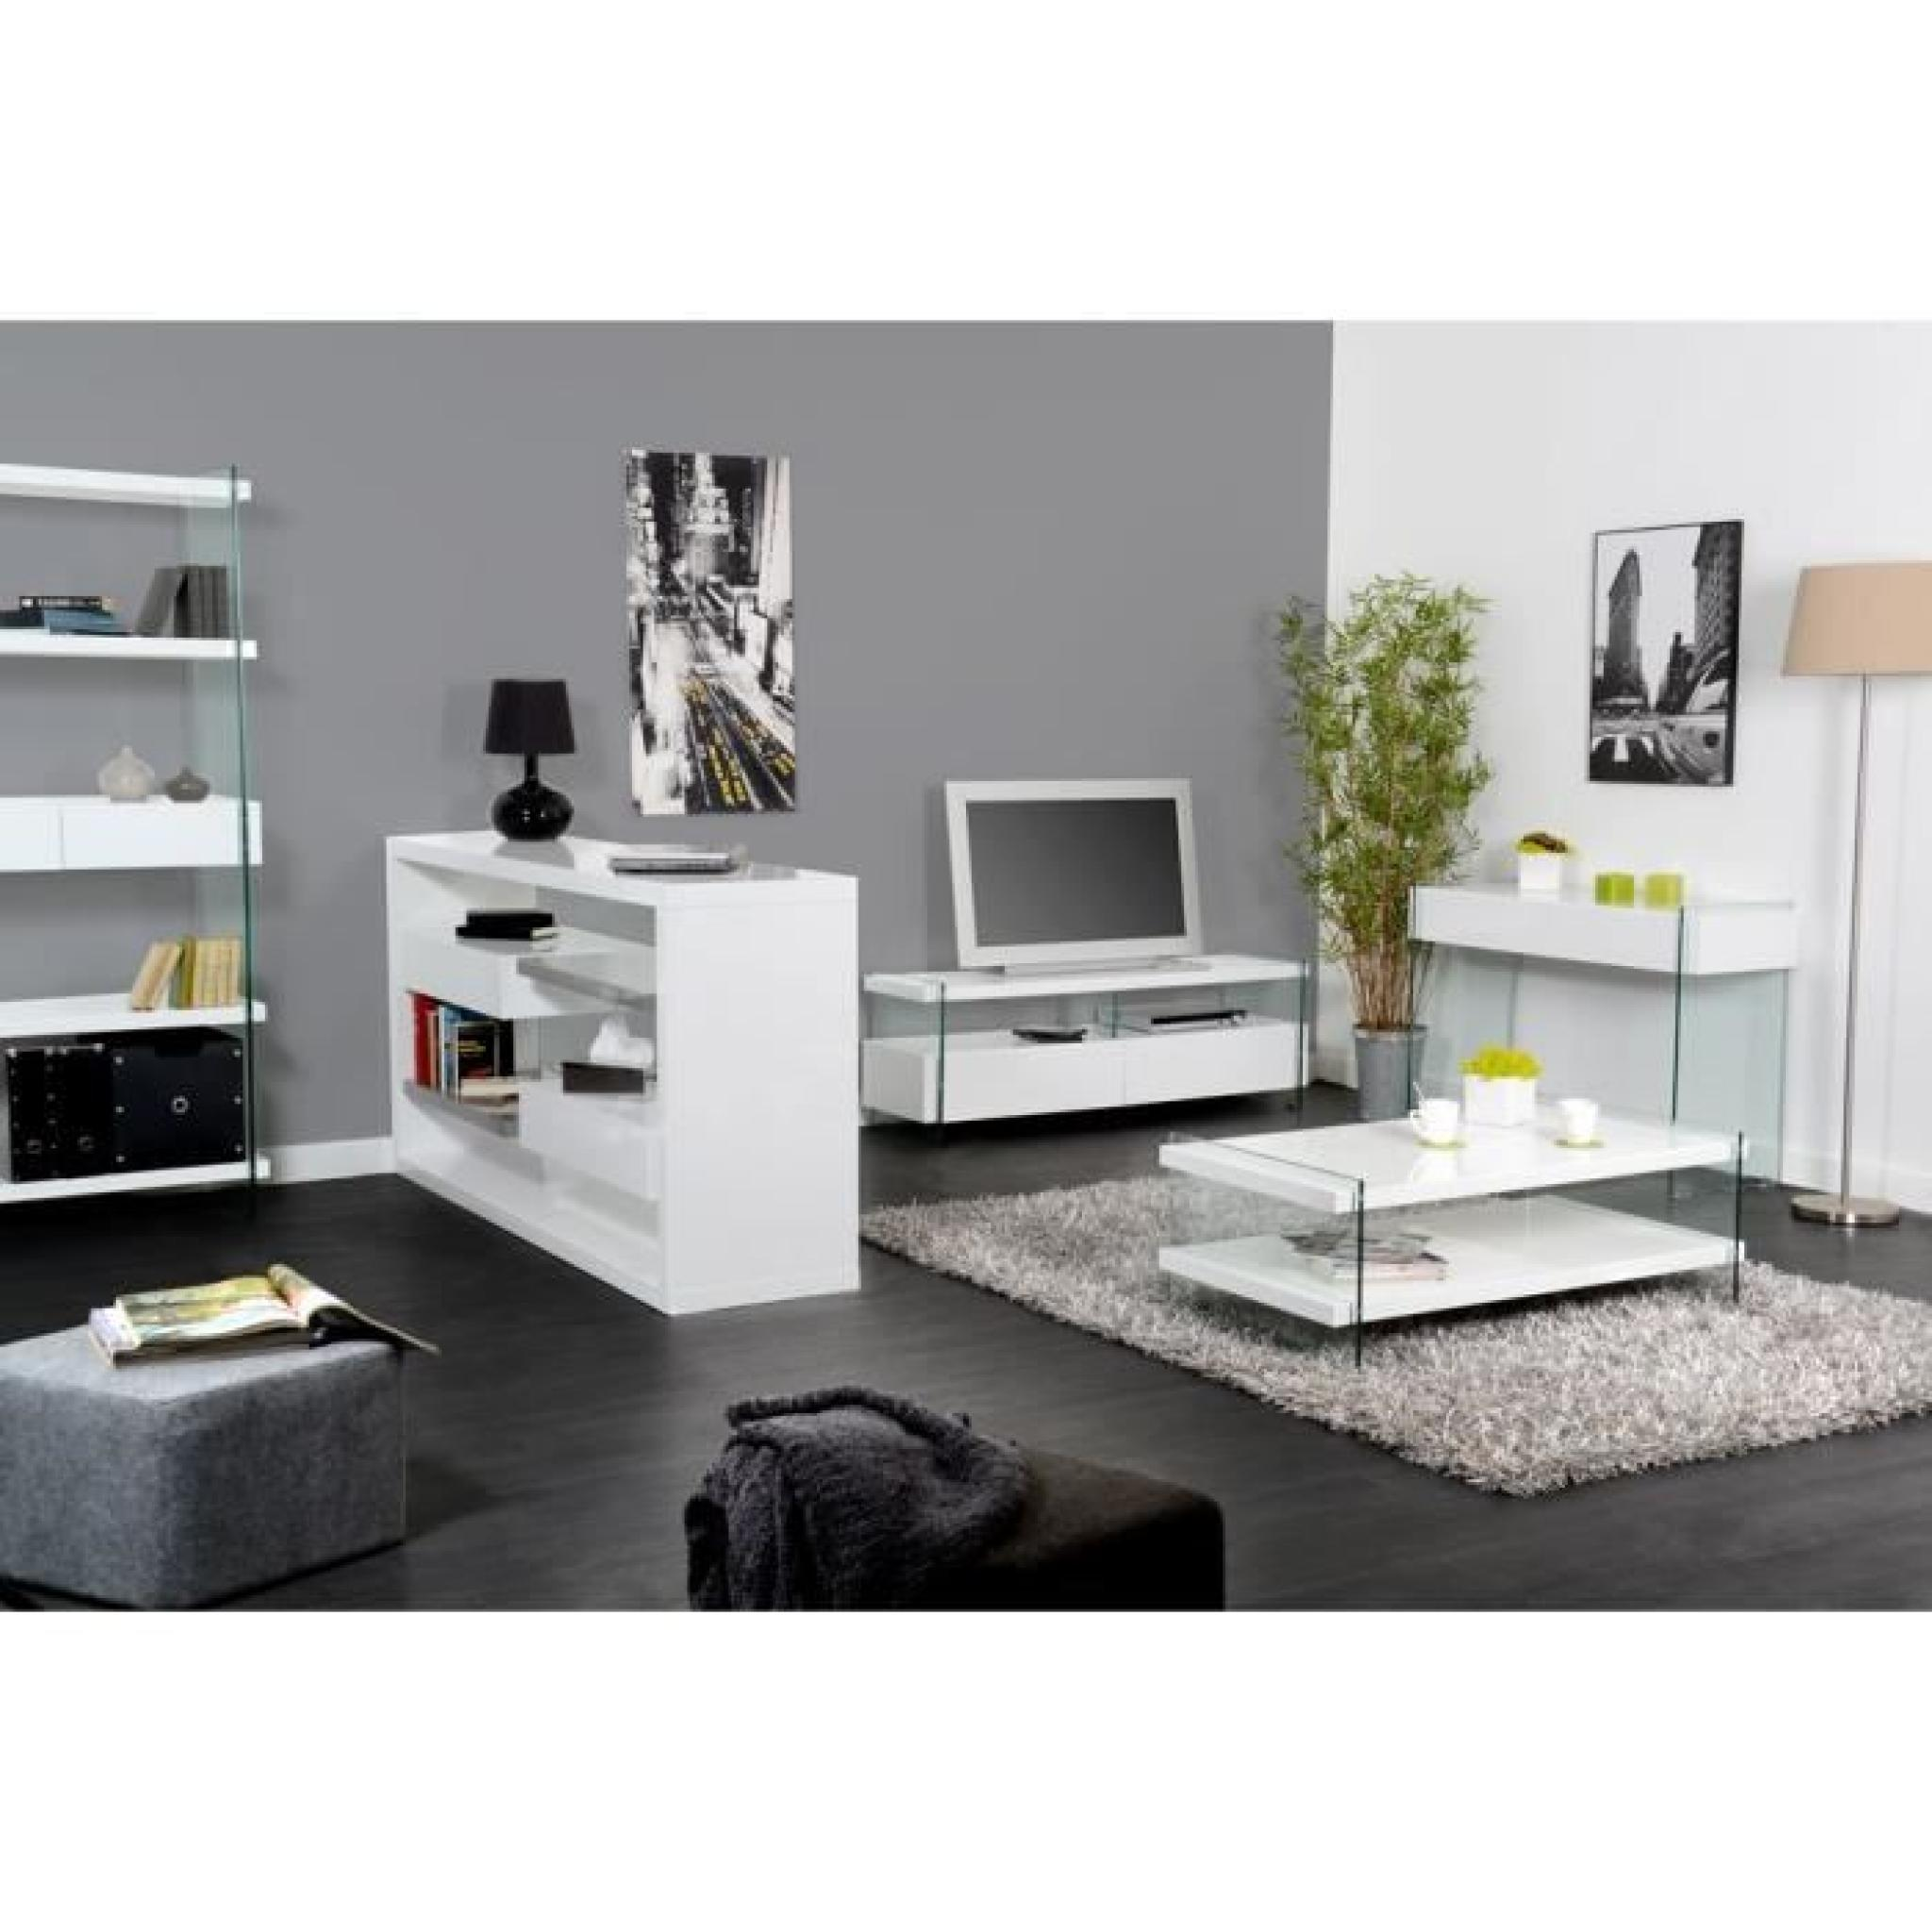 bahut spike blanc laqu verre achat vente buffet pas. Black Bedroom Furniture Sets. Home Design Ideas